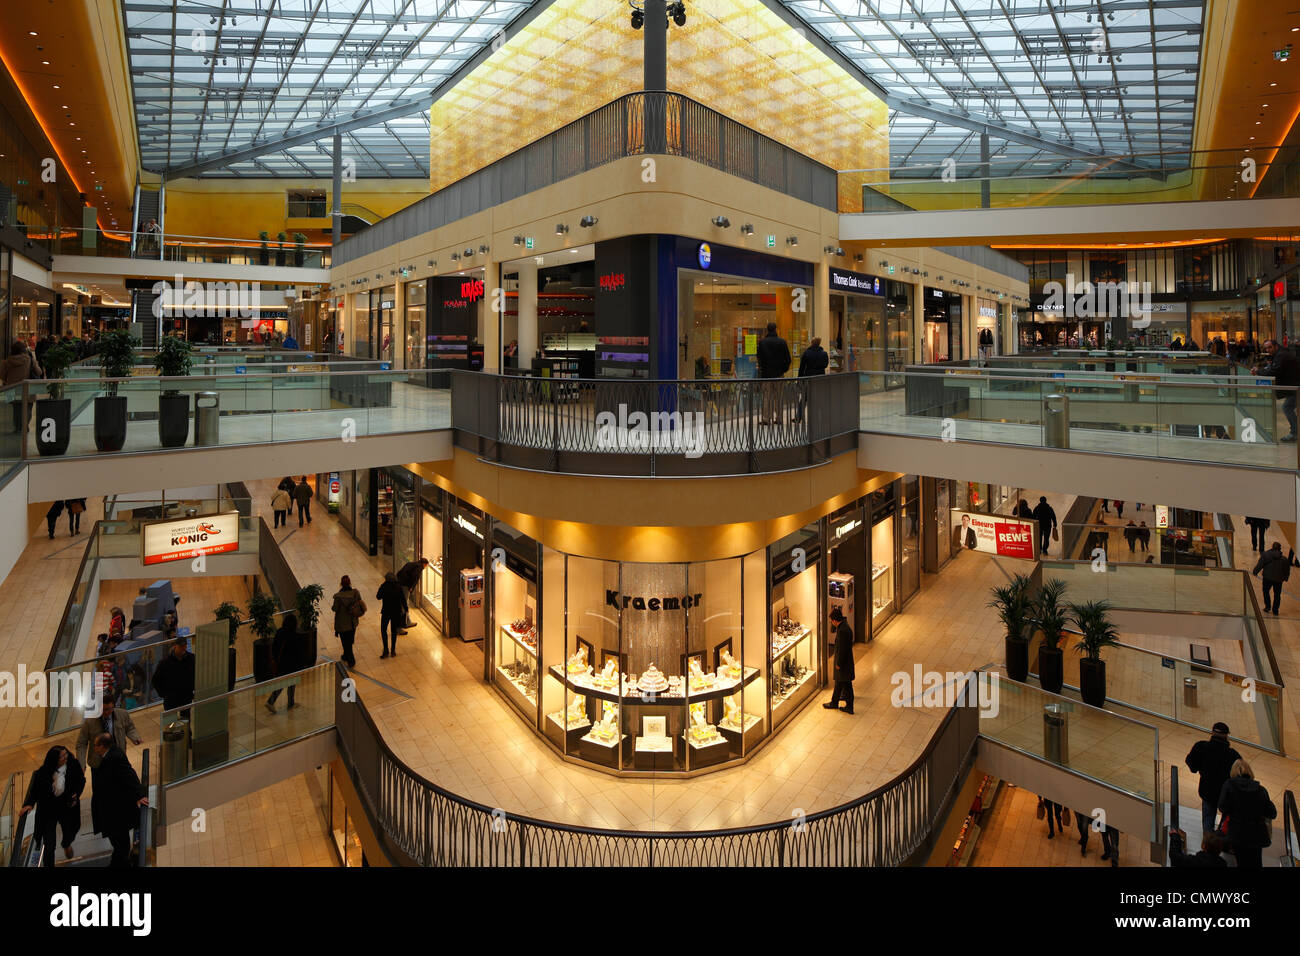 Dortmund Shopping Center D Dortmund Ruhr Area Westphalia North Rhine Westphalia